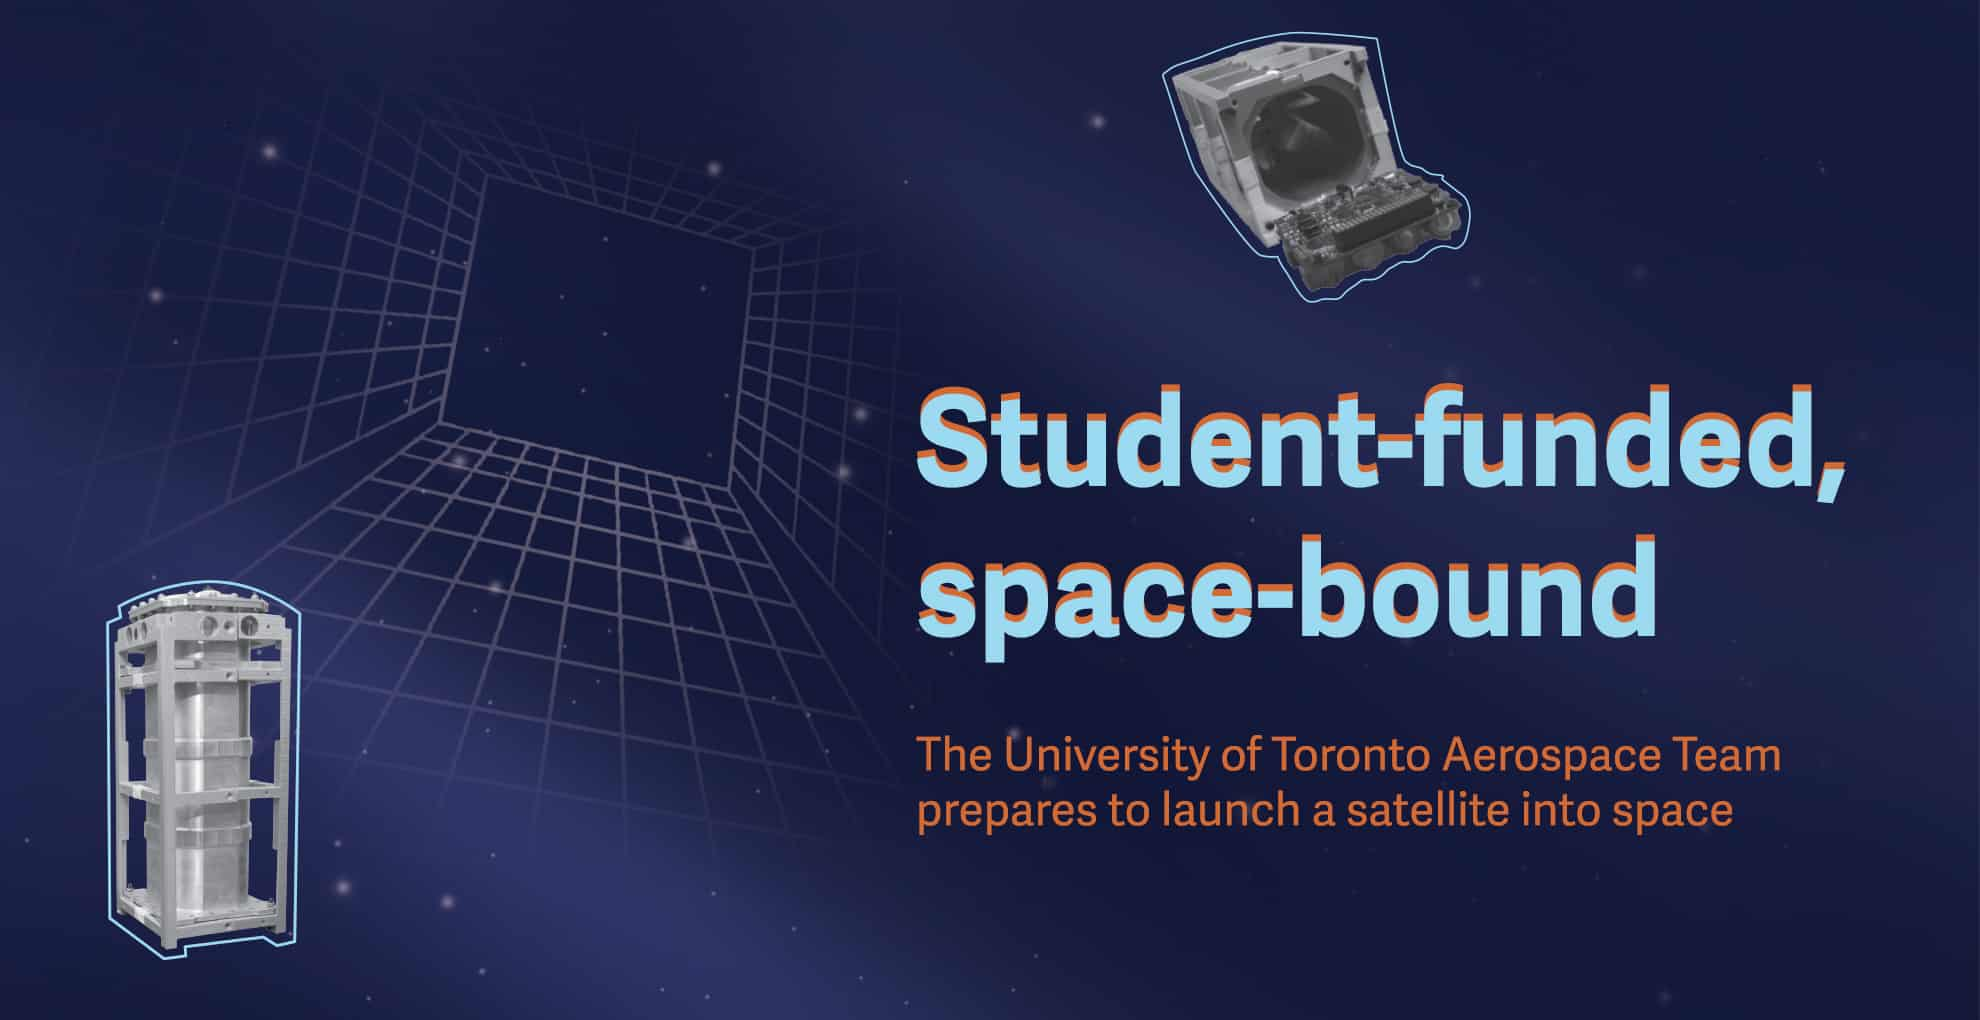 Student-funded, space-bound